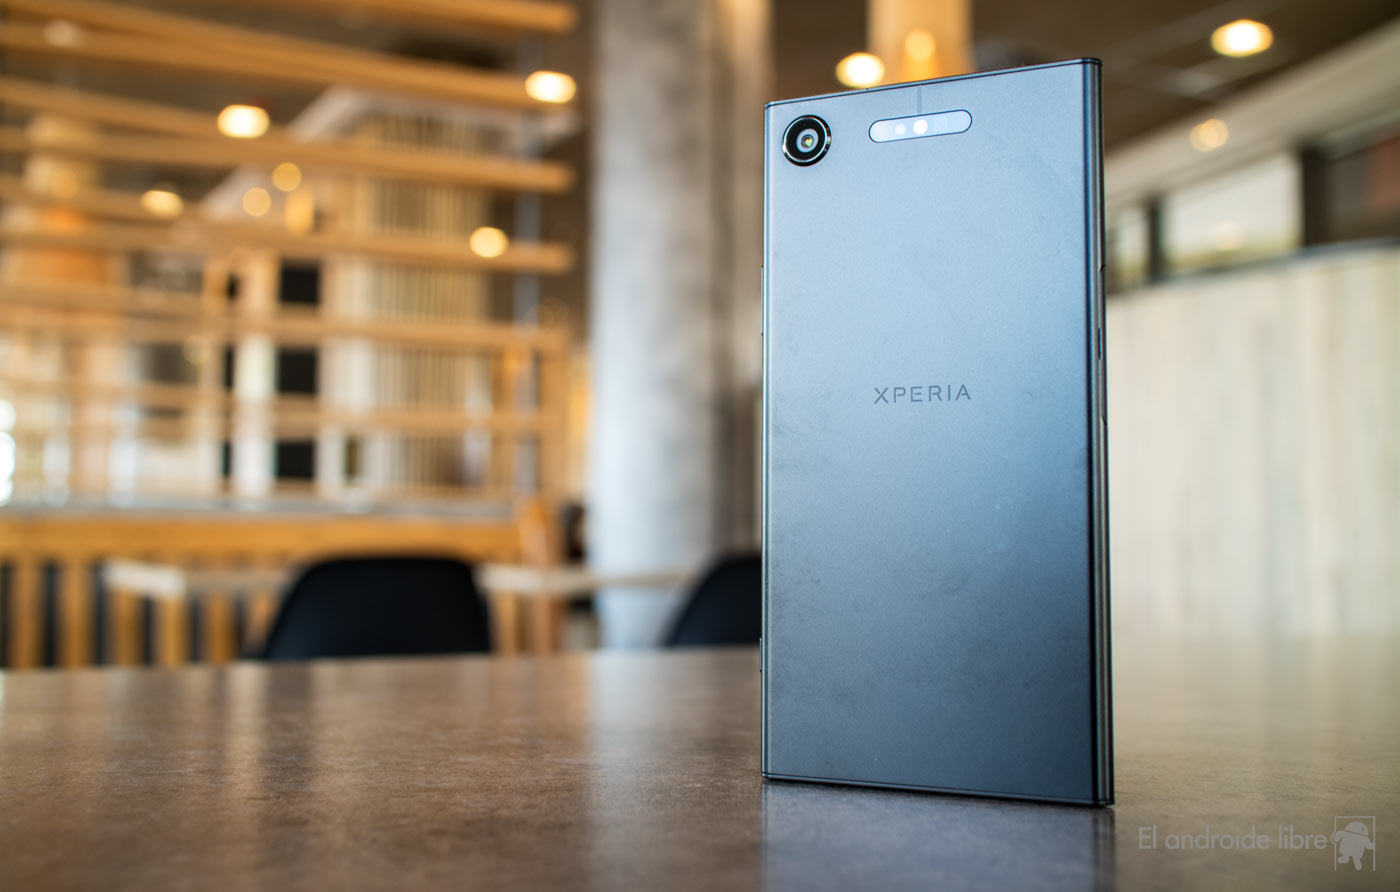 Sony Xperia XZ1 analysis: it is not surprising in the design, but in the operation